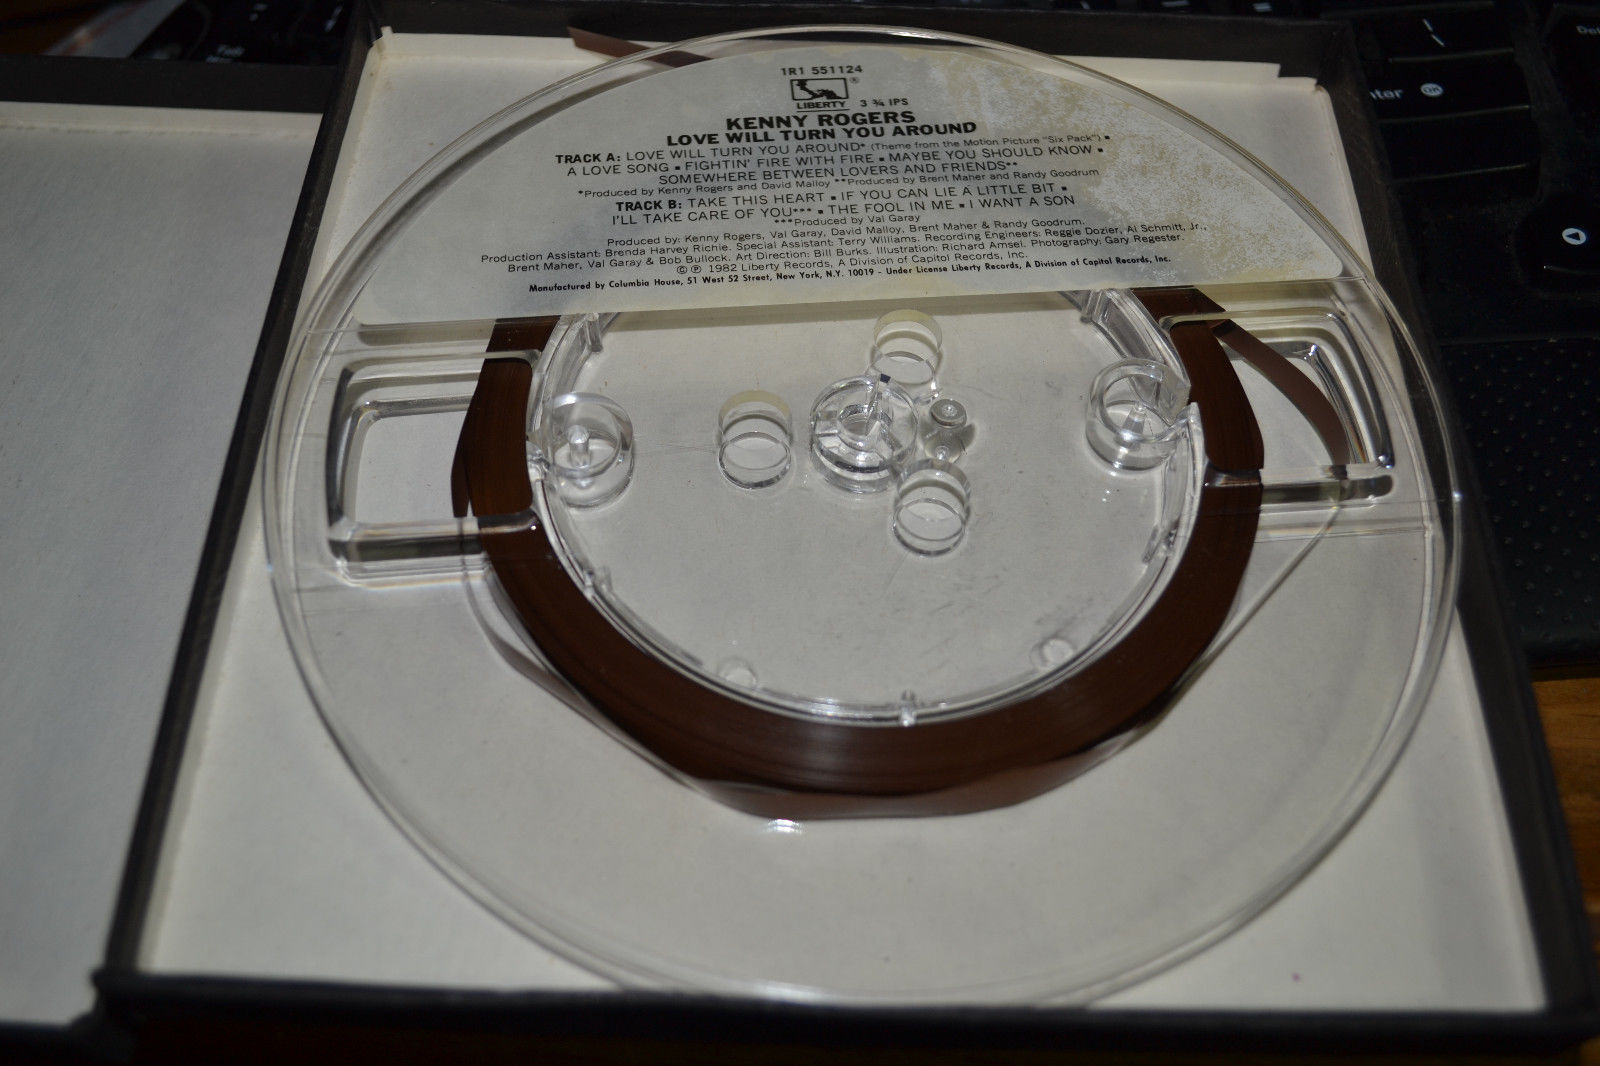 Kenny Rogers Love Will Turn You Around Reel to Reel Tape Very Nice Shape!!! image 2